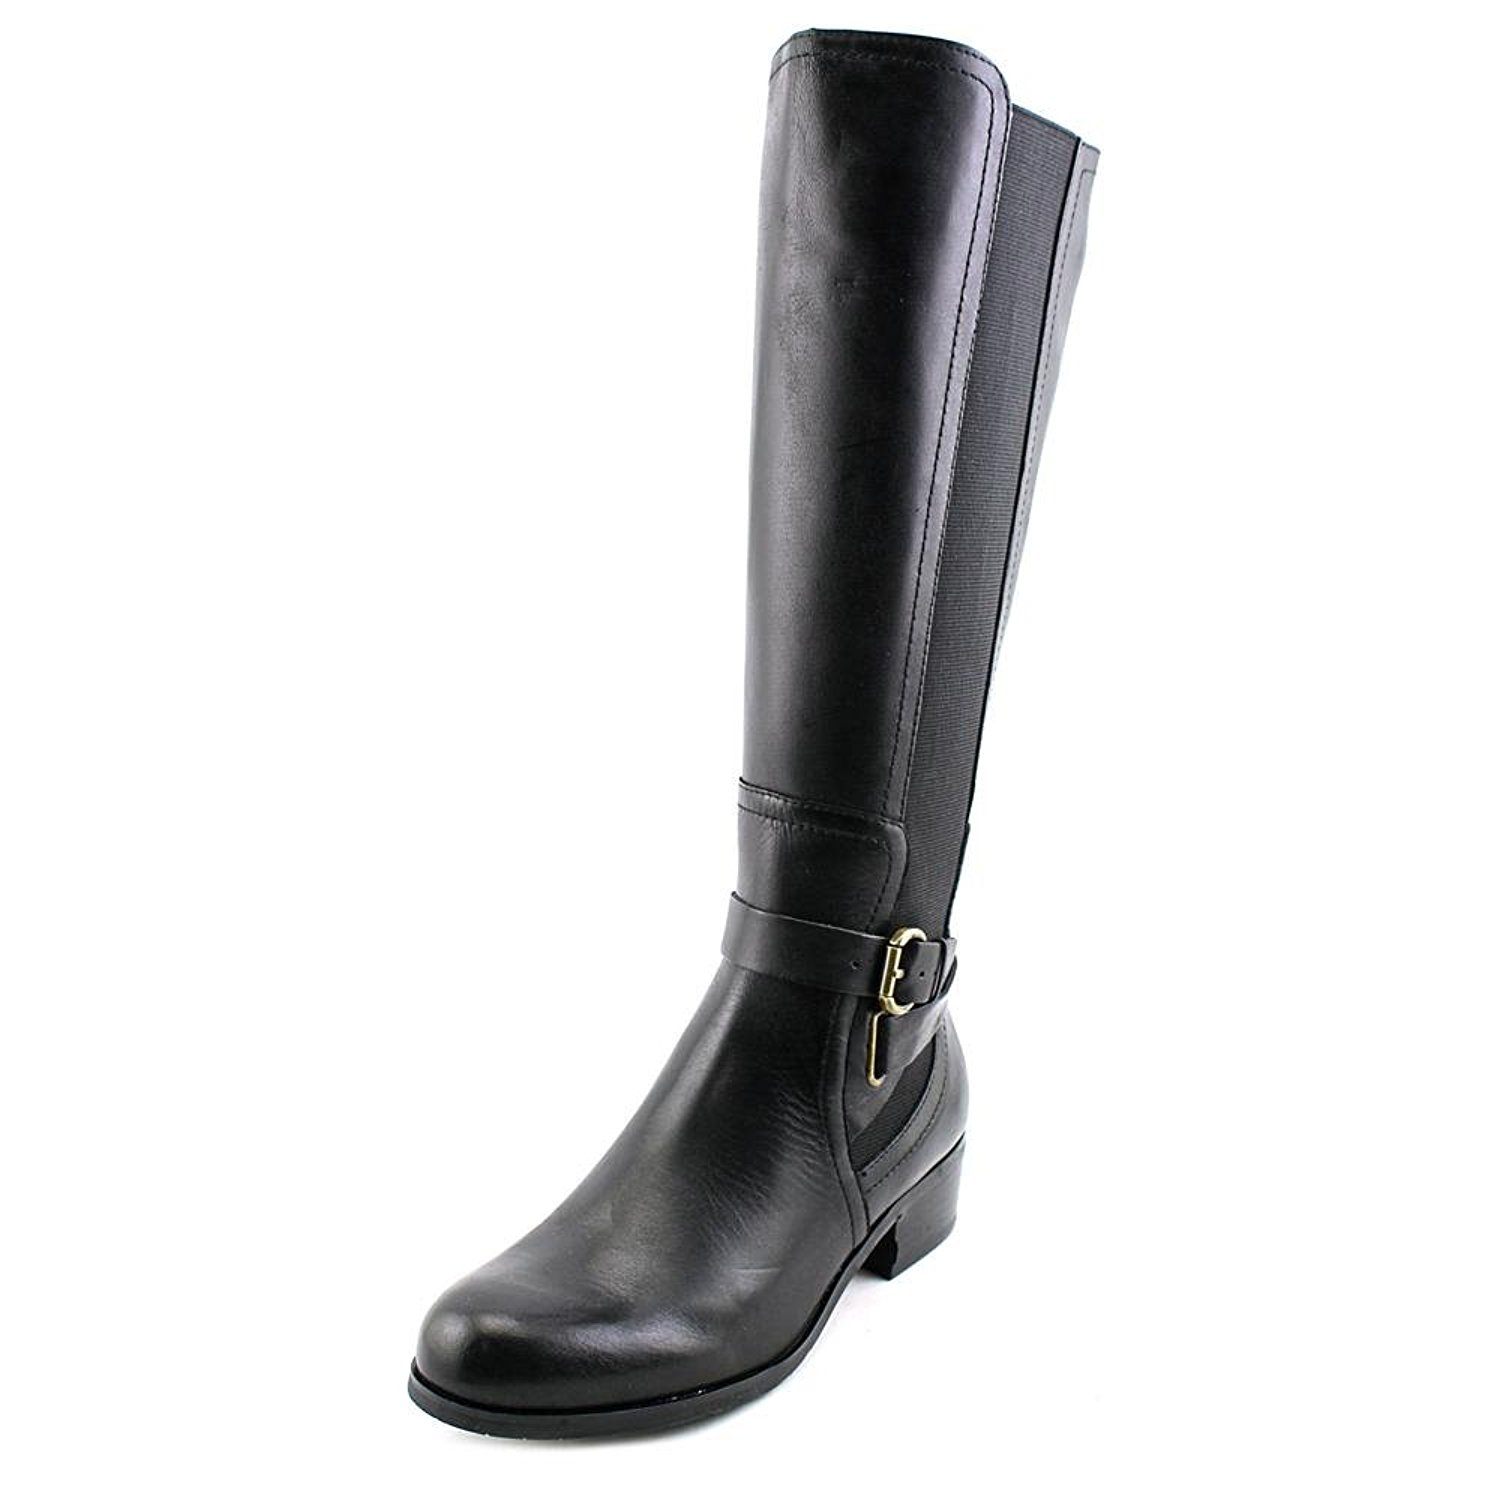 d9a1395ee5482 Get Quotations · Corso Como Baylee Wide Calf Women Round Toe Leather Knee  High Boot